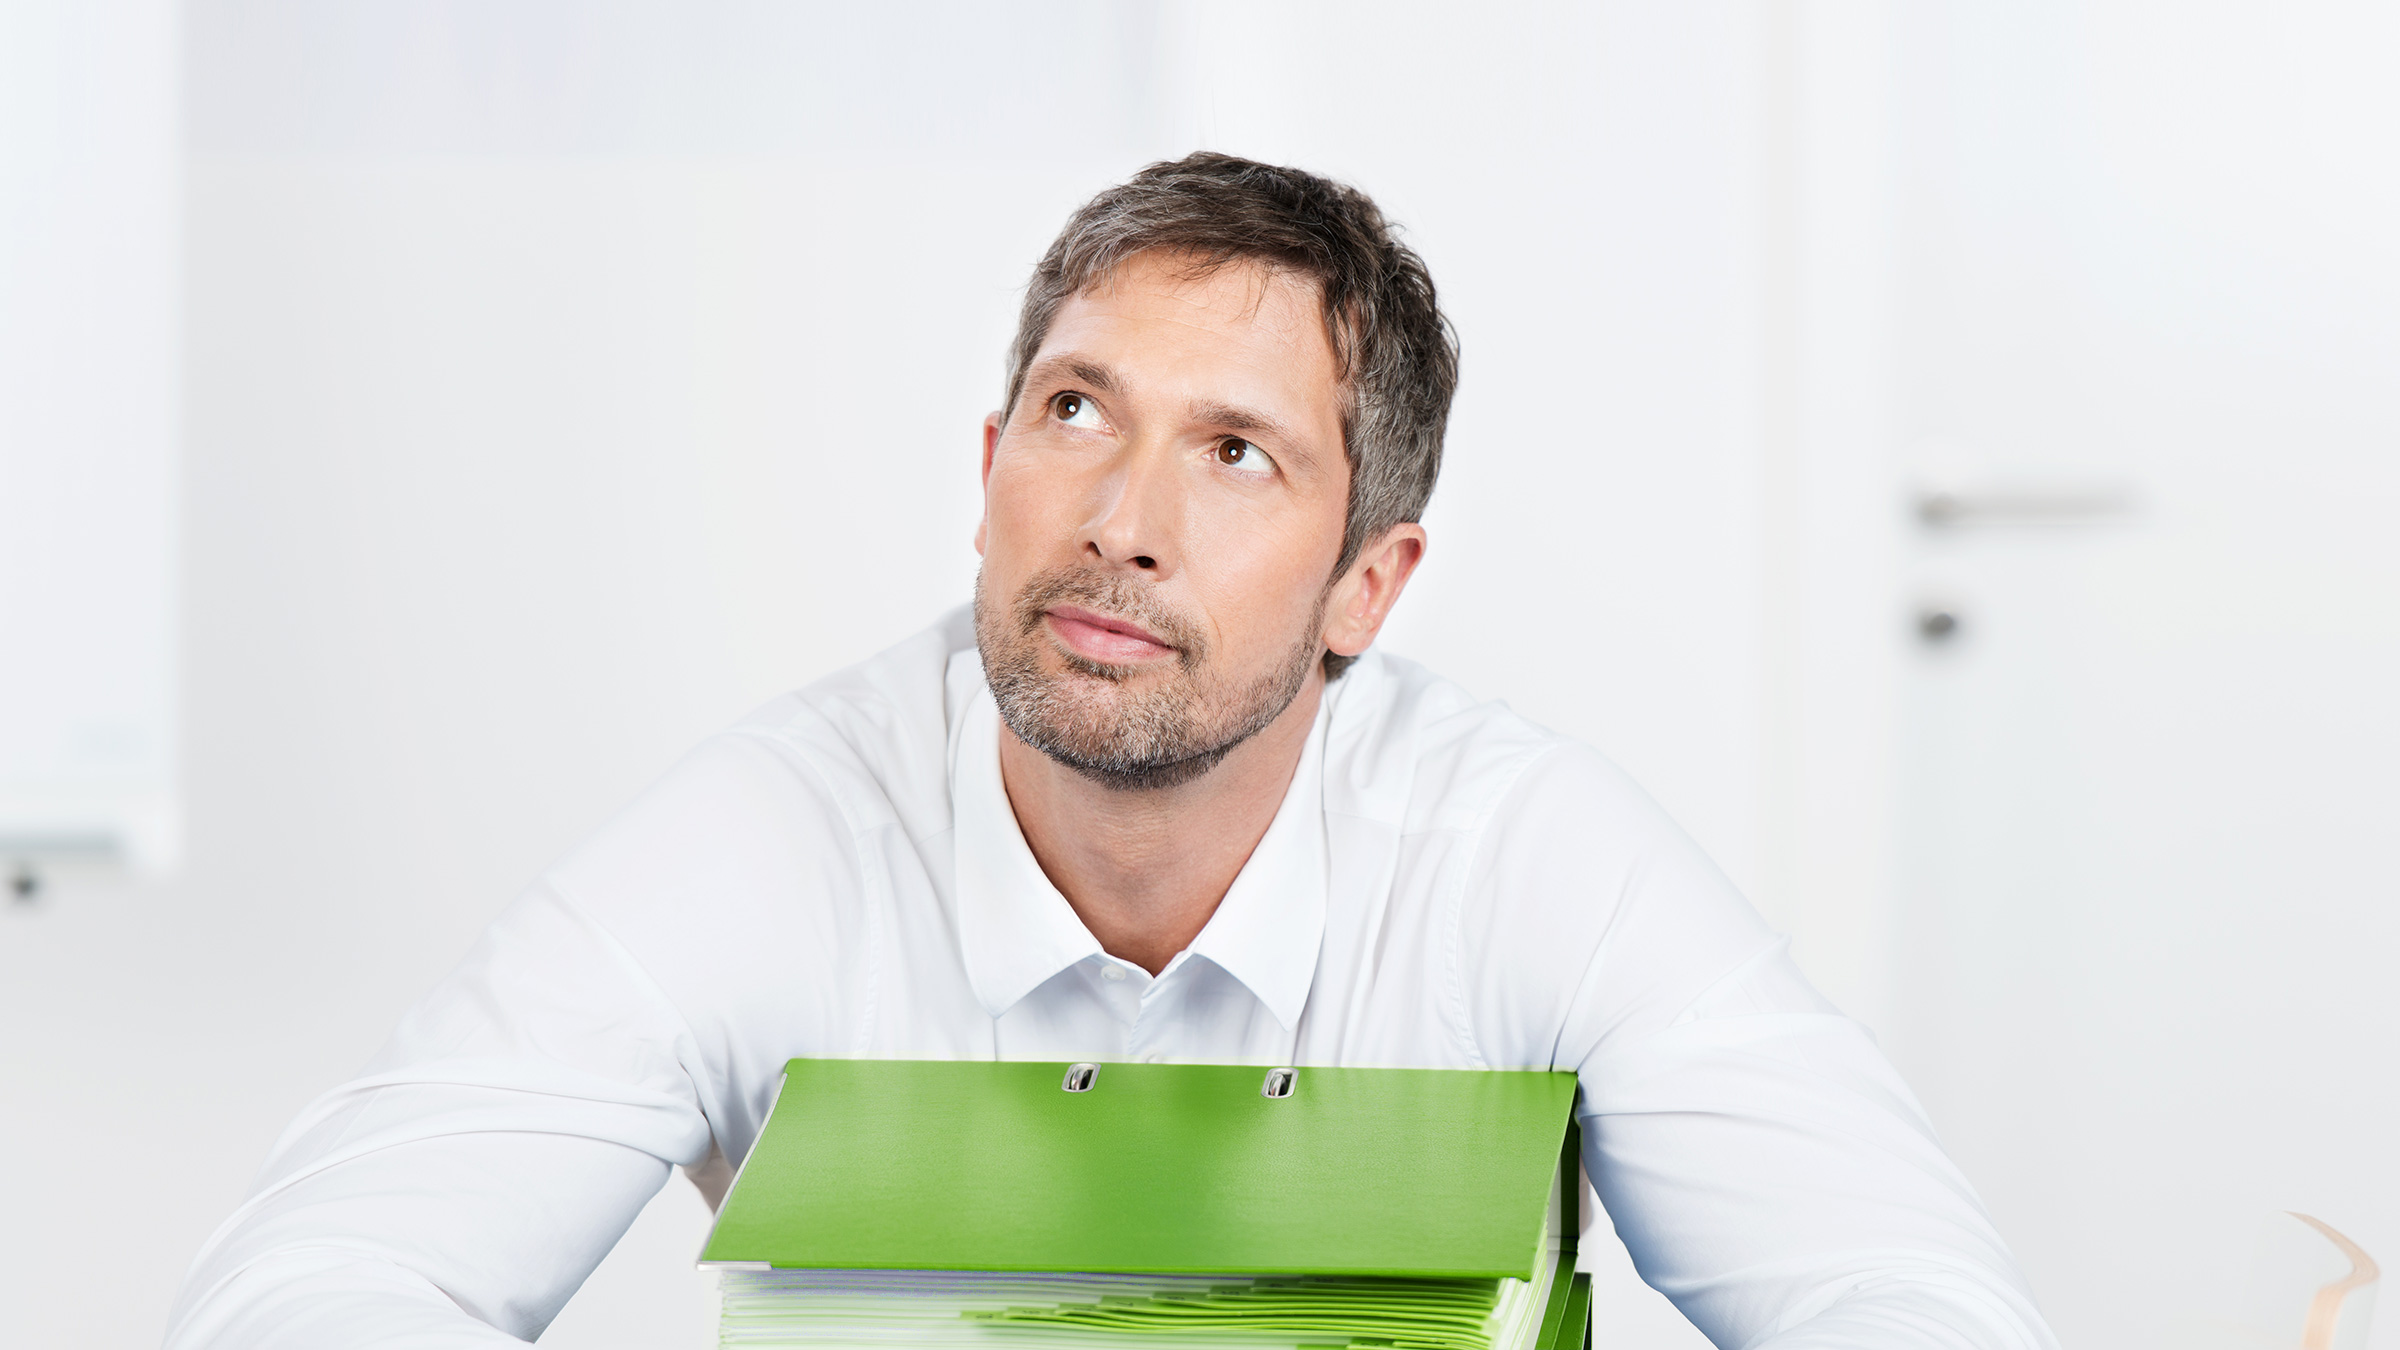 Man waiting with files